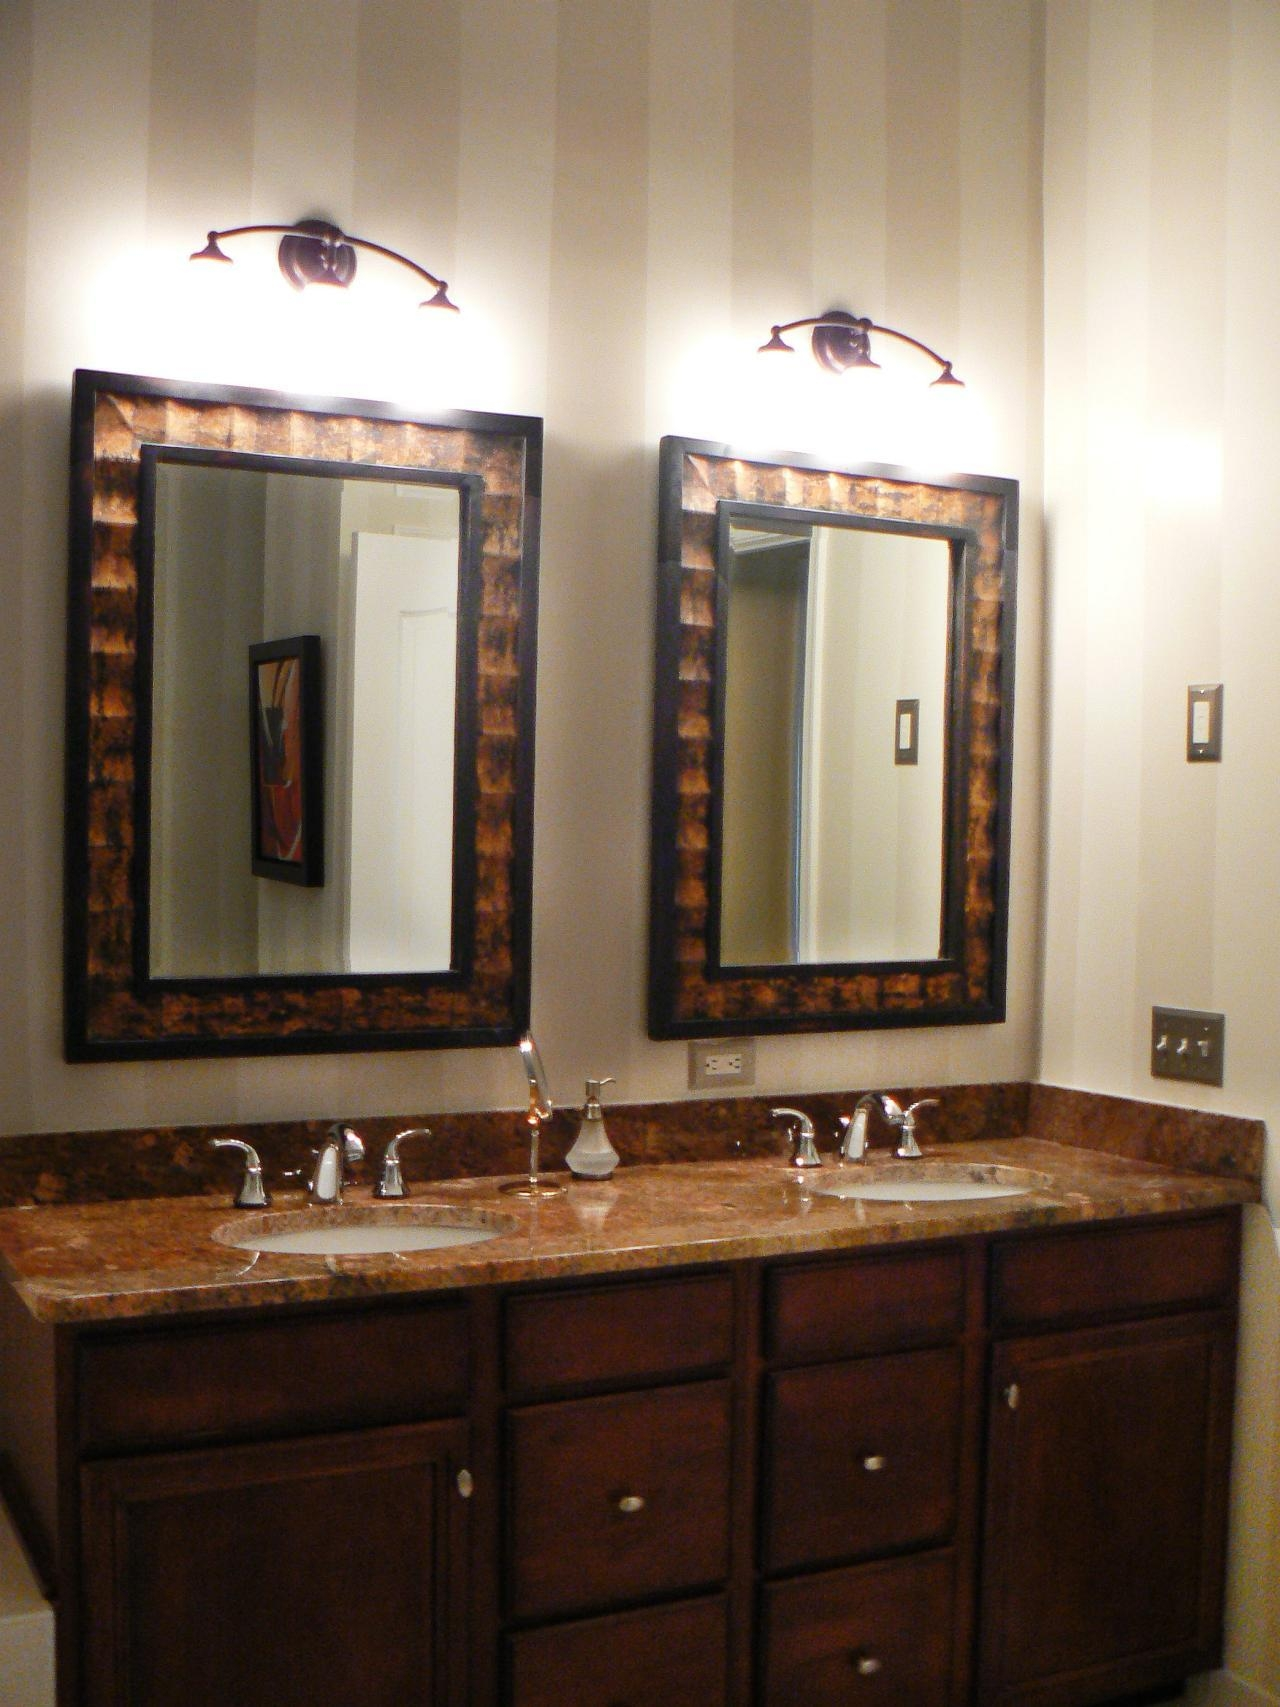 Bathroom Cabinets : Mirror Borders Large Decorative Mirrors Within Decorative Mirrors For Bathroom Vanity (Image 10 of 20)